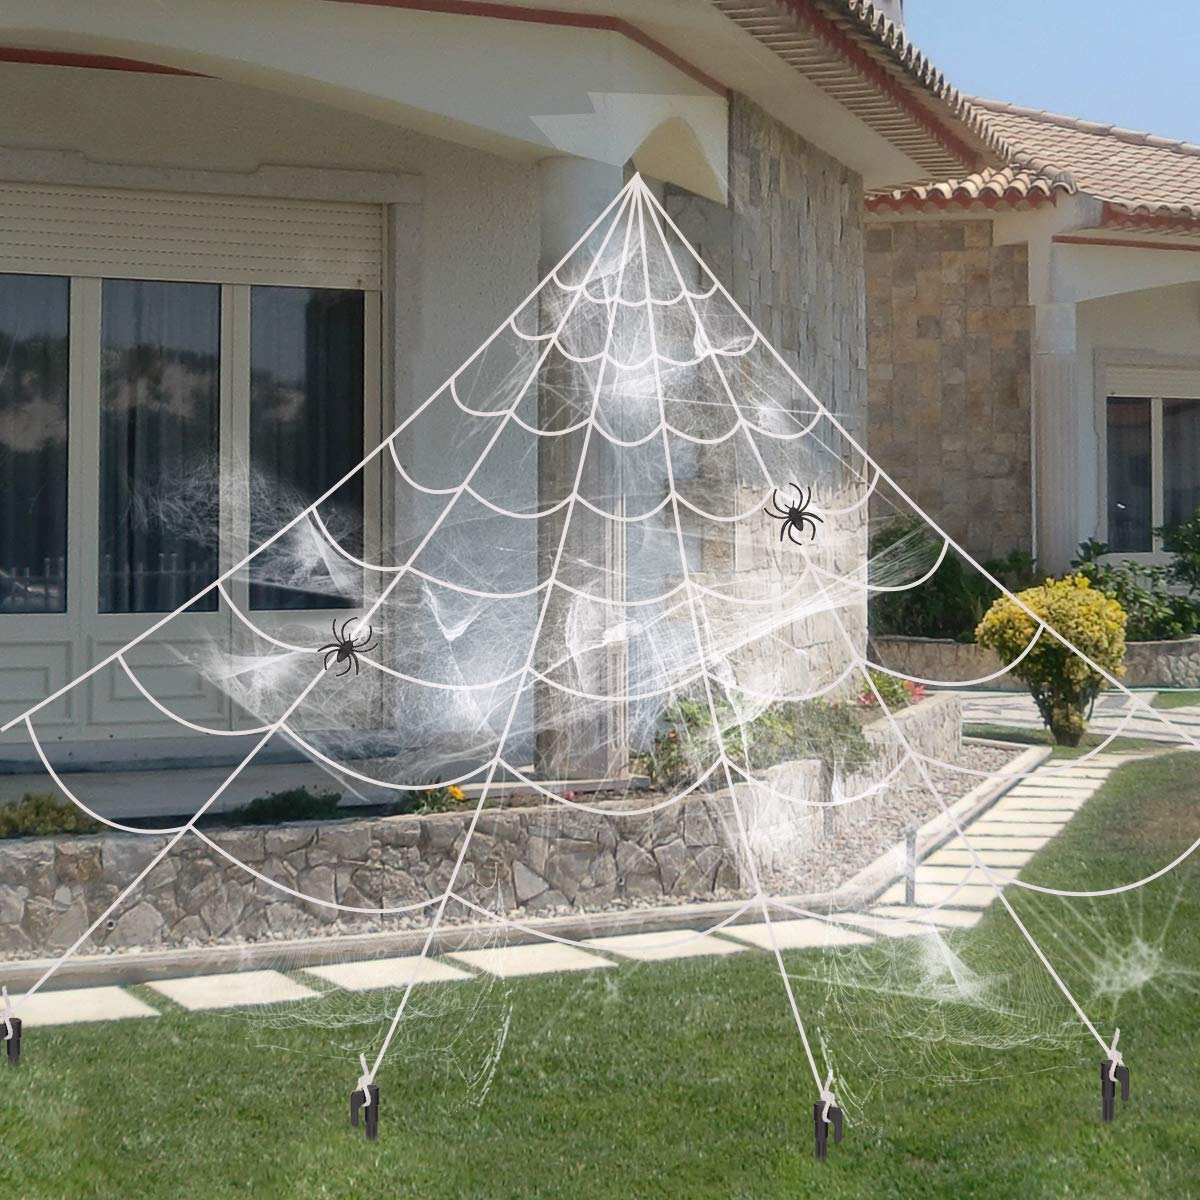 16Ft Giant Spider Web With 2 Small Spider For Outdoor Halloween Decorations